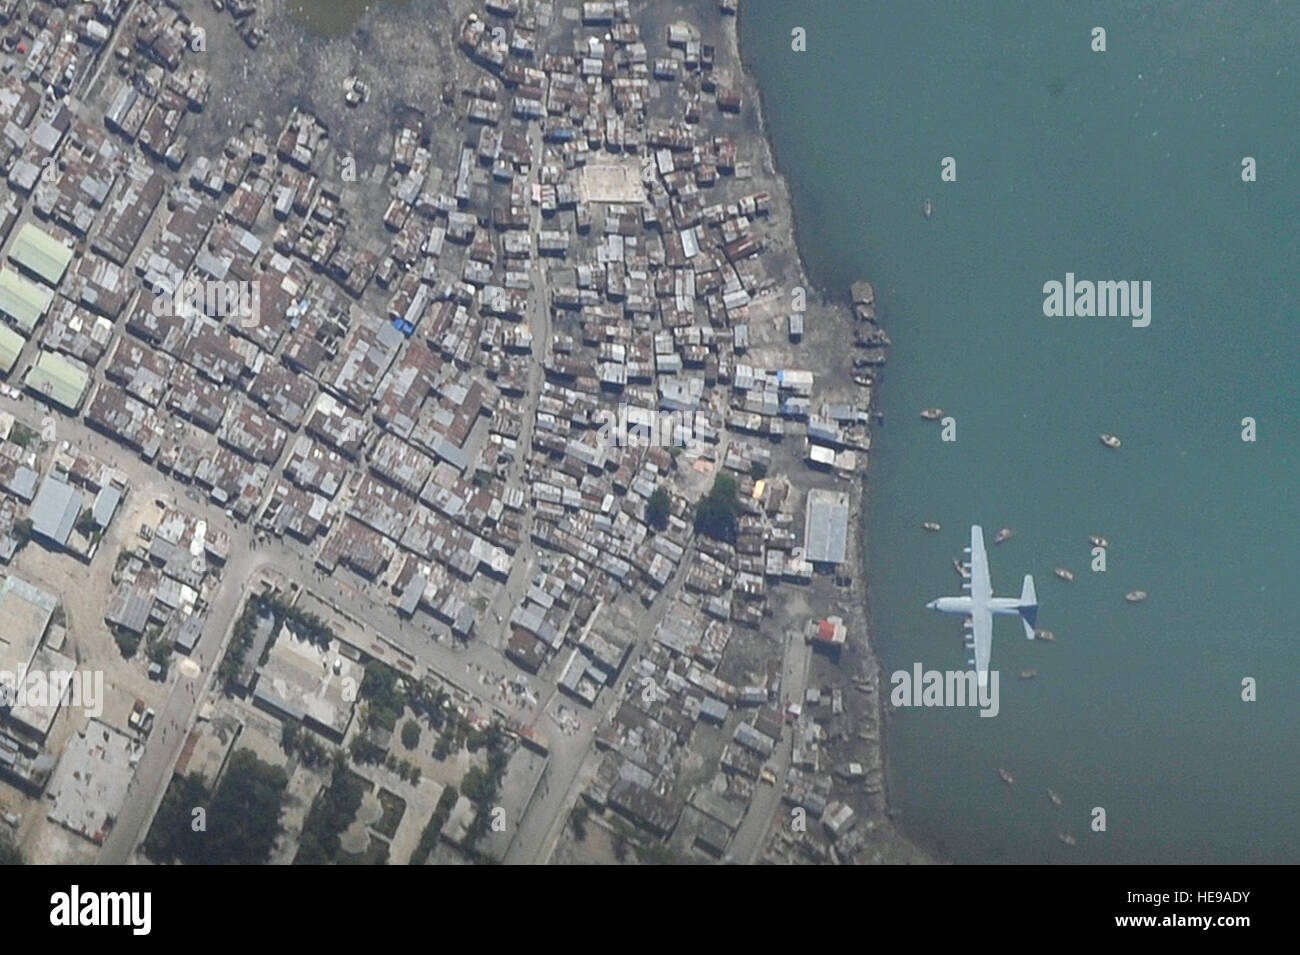 A C-130 Hercules aircraft makes a final approach into Toussaint Louverture International Airport in Port-au-Prince, - Stock Image